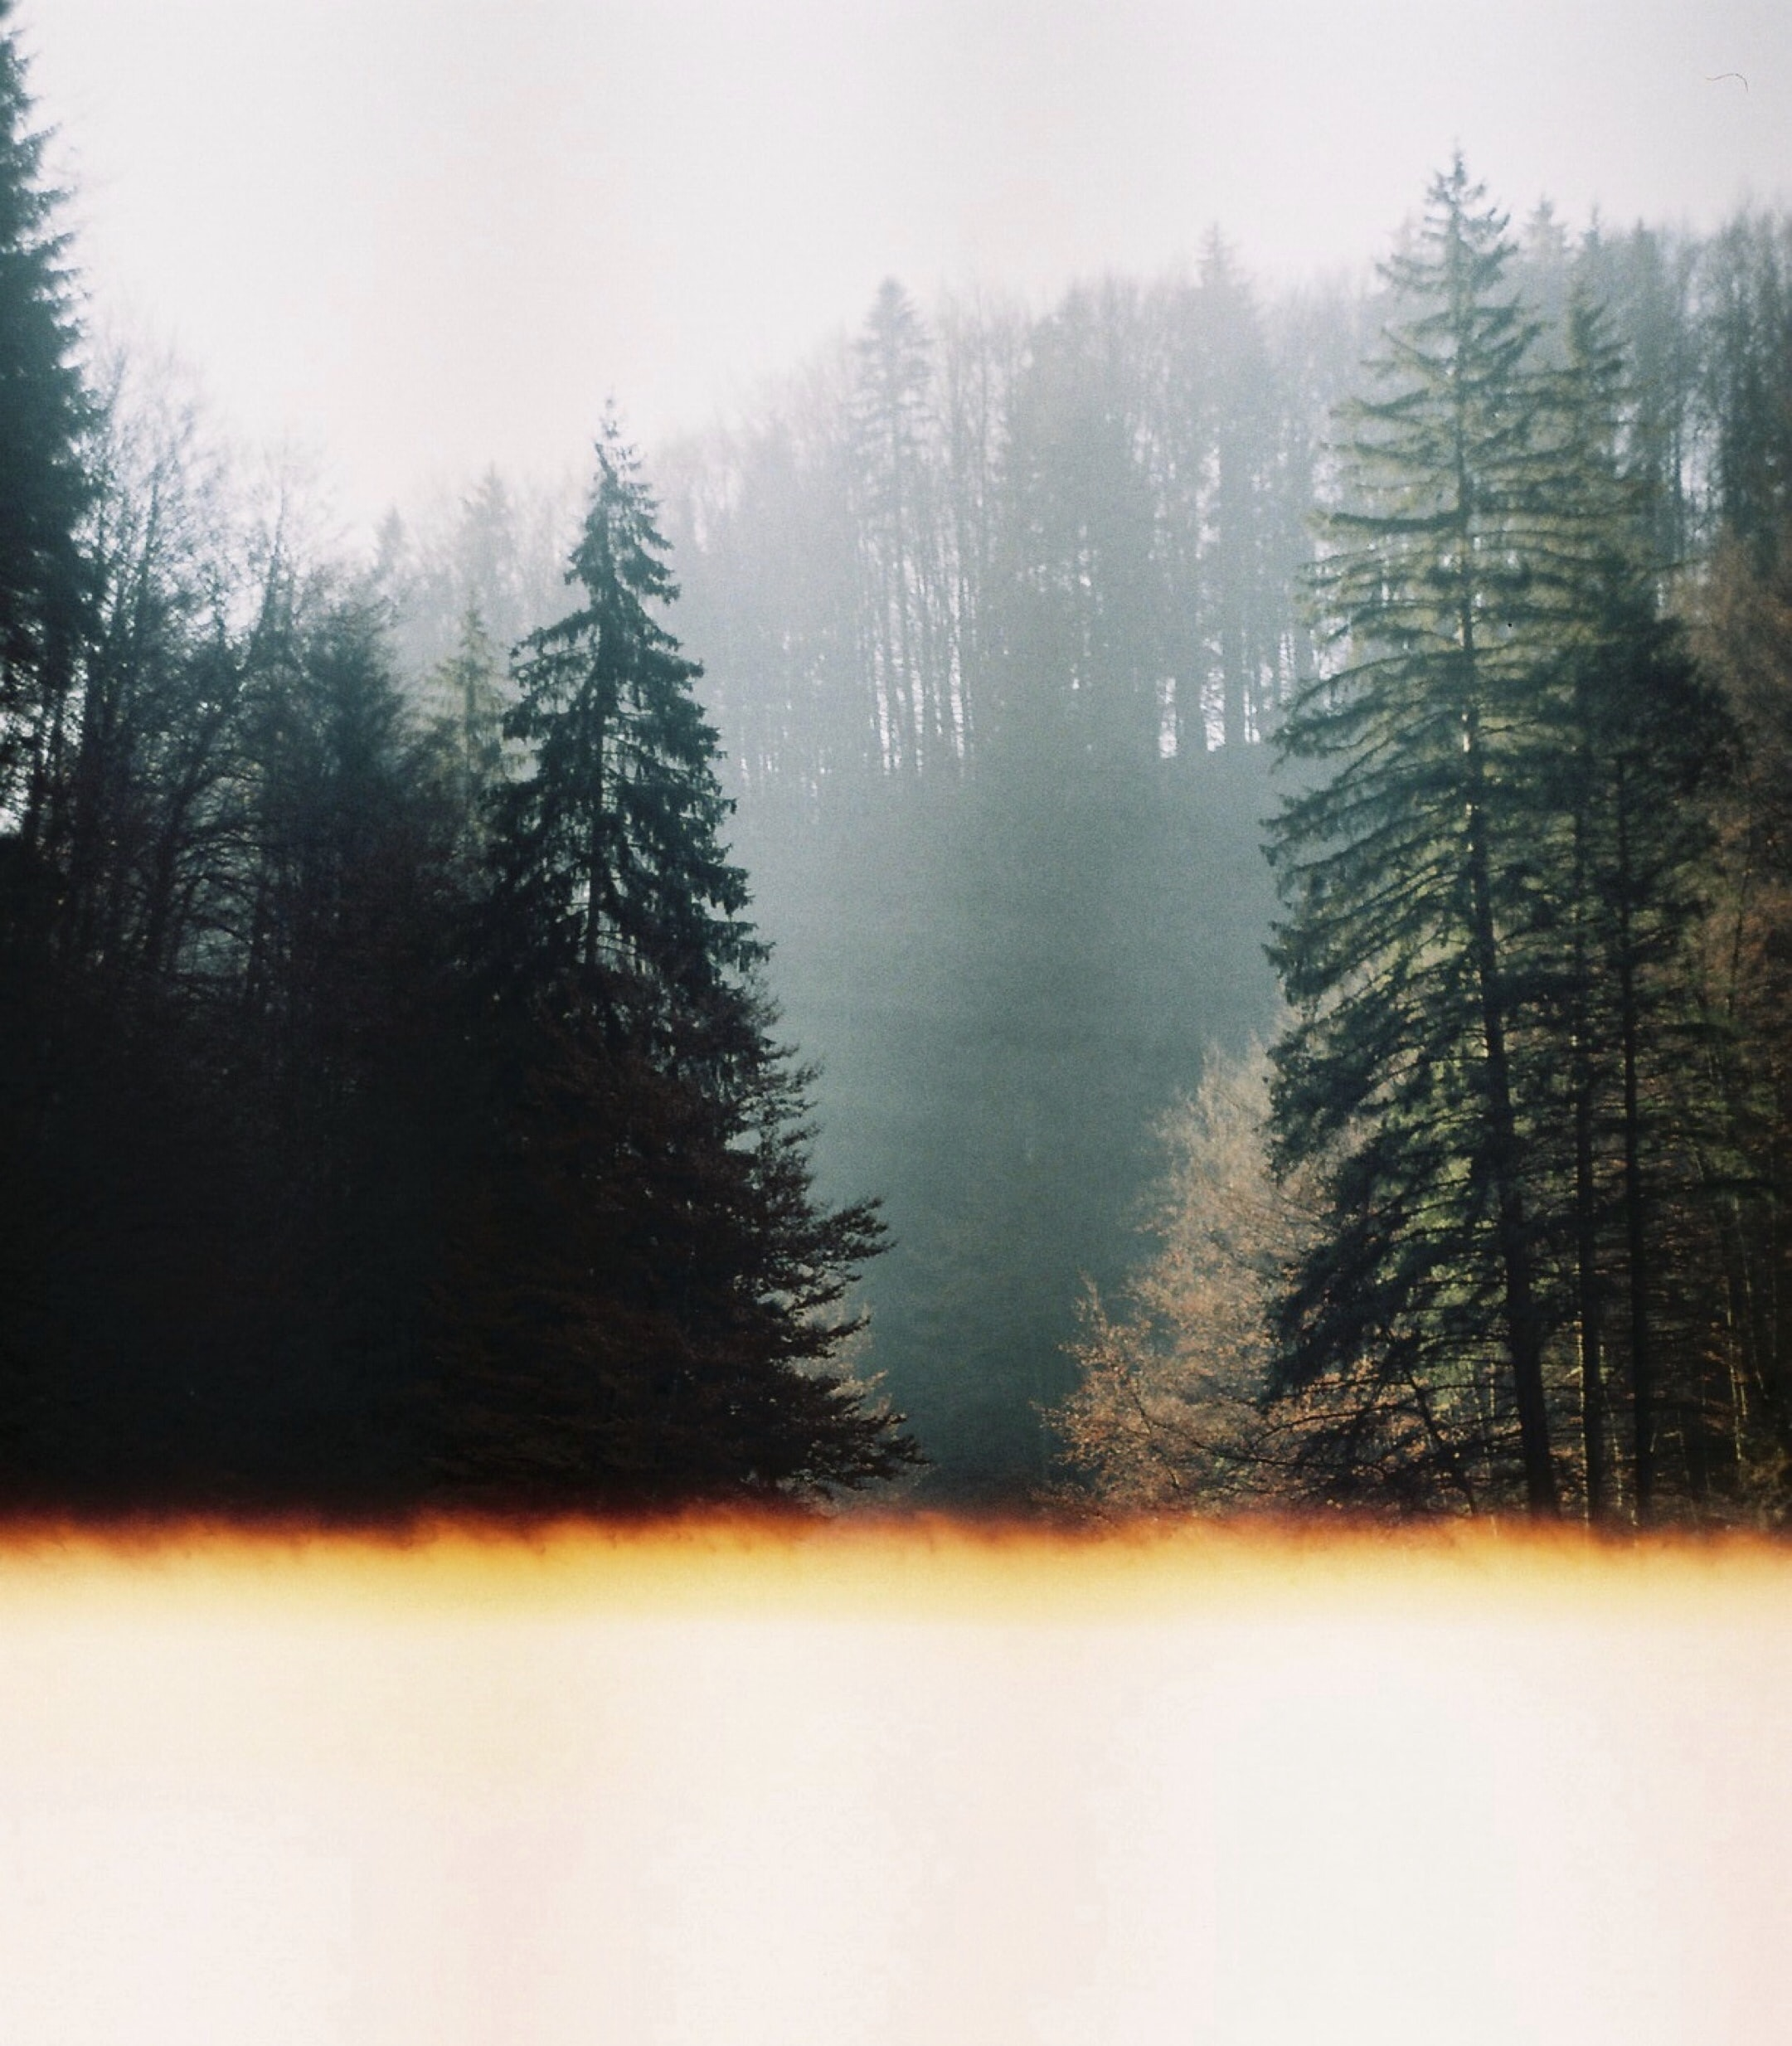 forest with tall trees covered with fogs